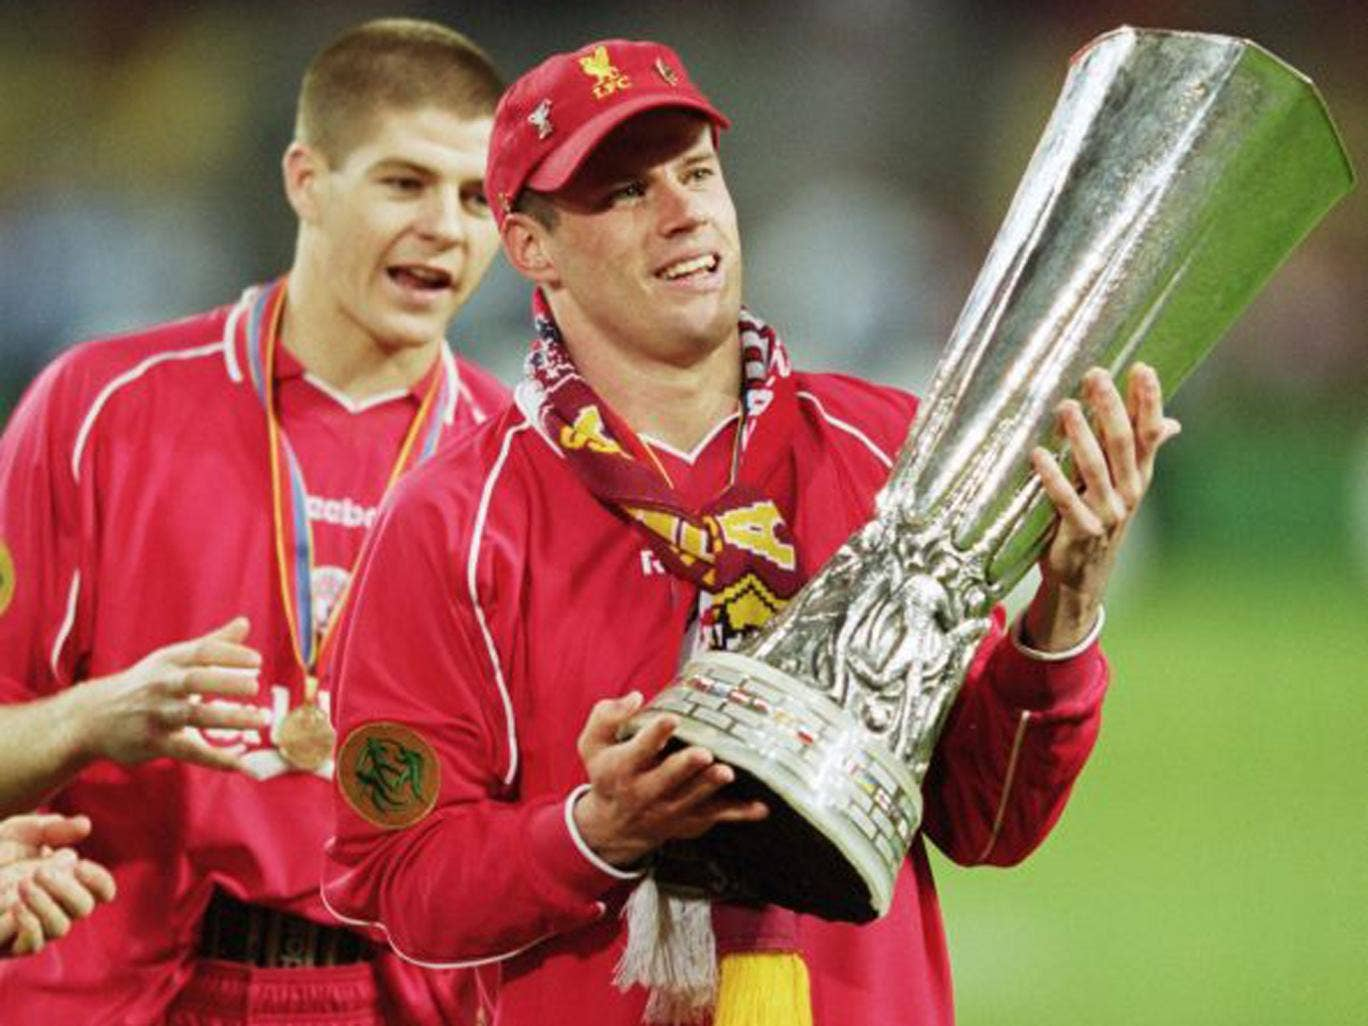 Liverpool's Jamie Carragher, with Steven Gerrard in the background, after winning the Uefa Cup in 2001